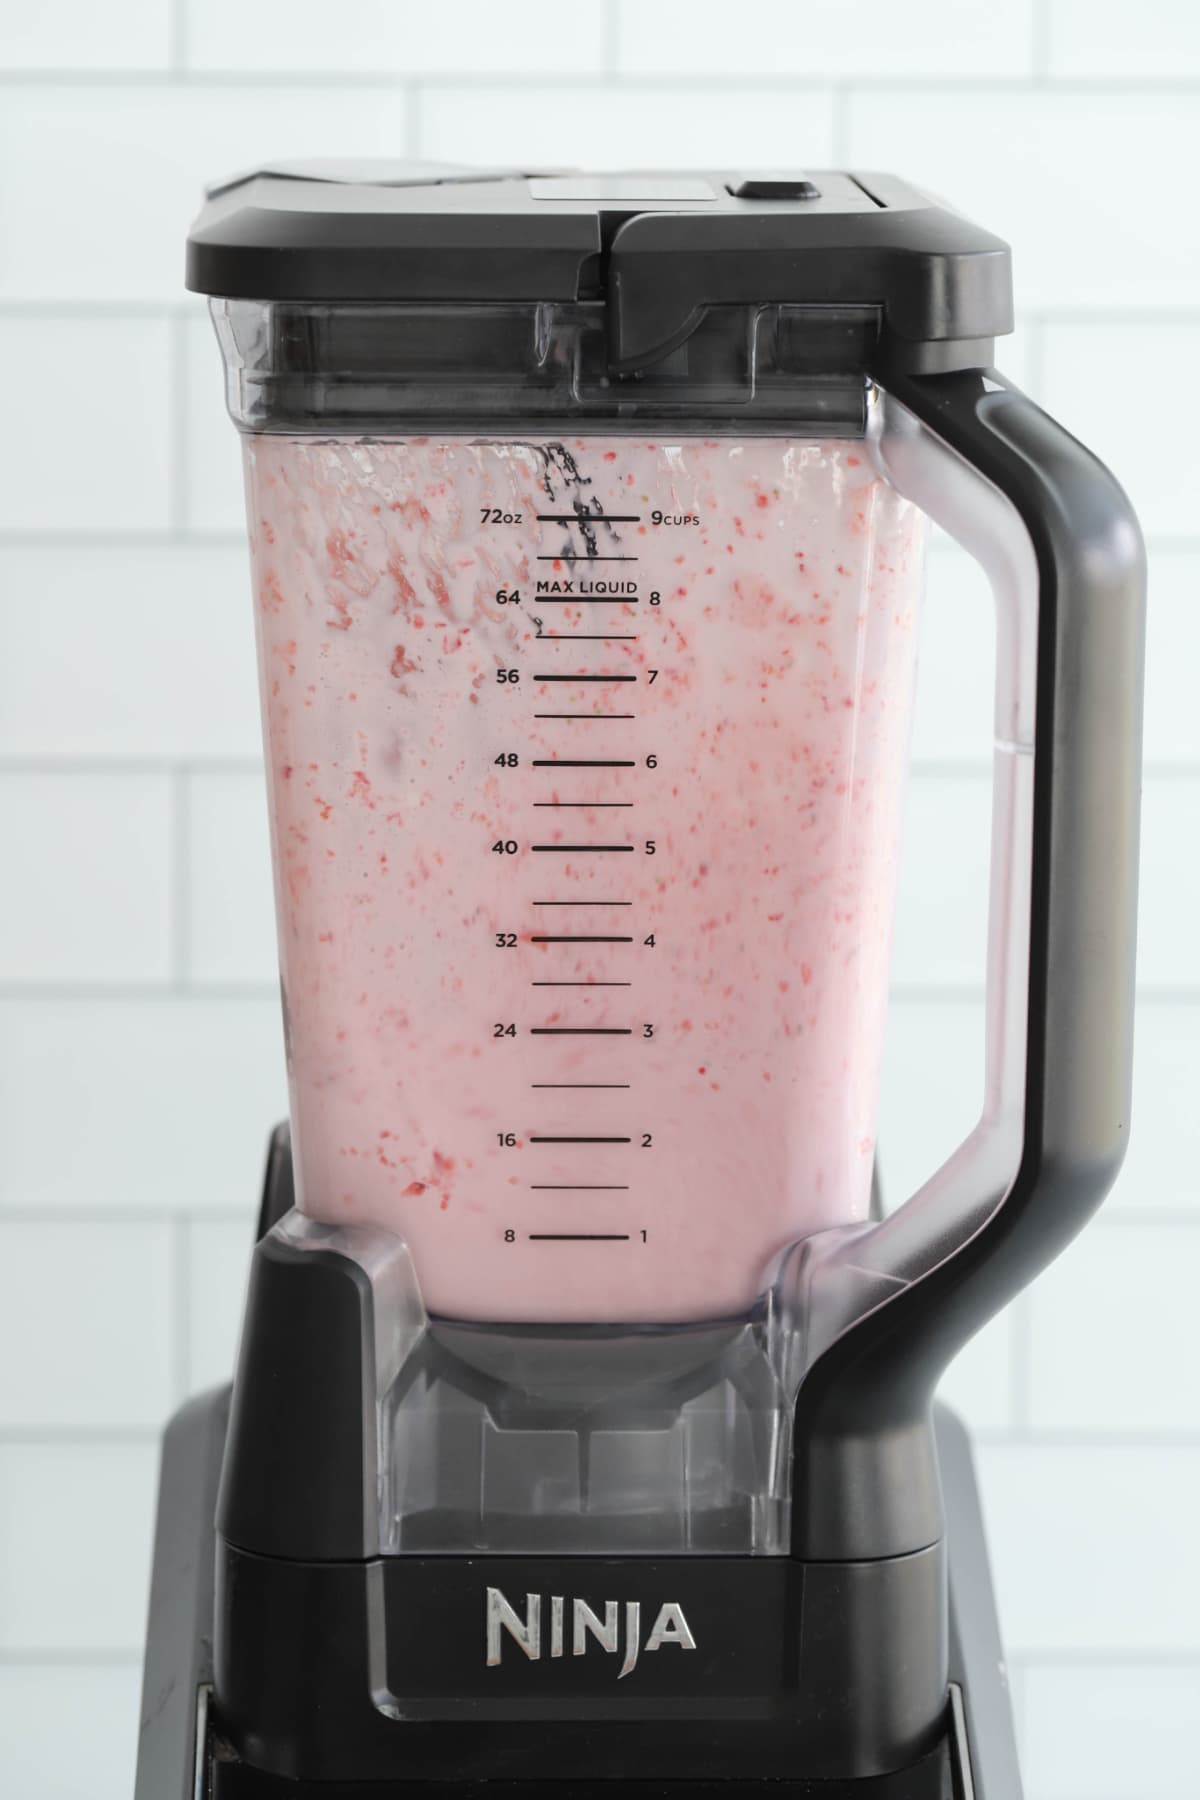 Blending all the strawberry milkshake ingredients